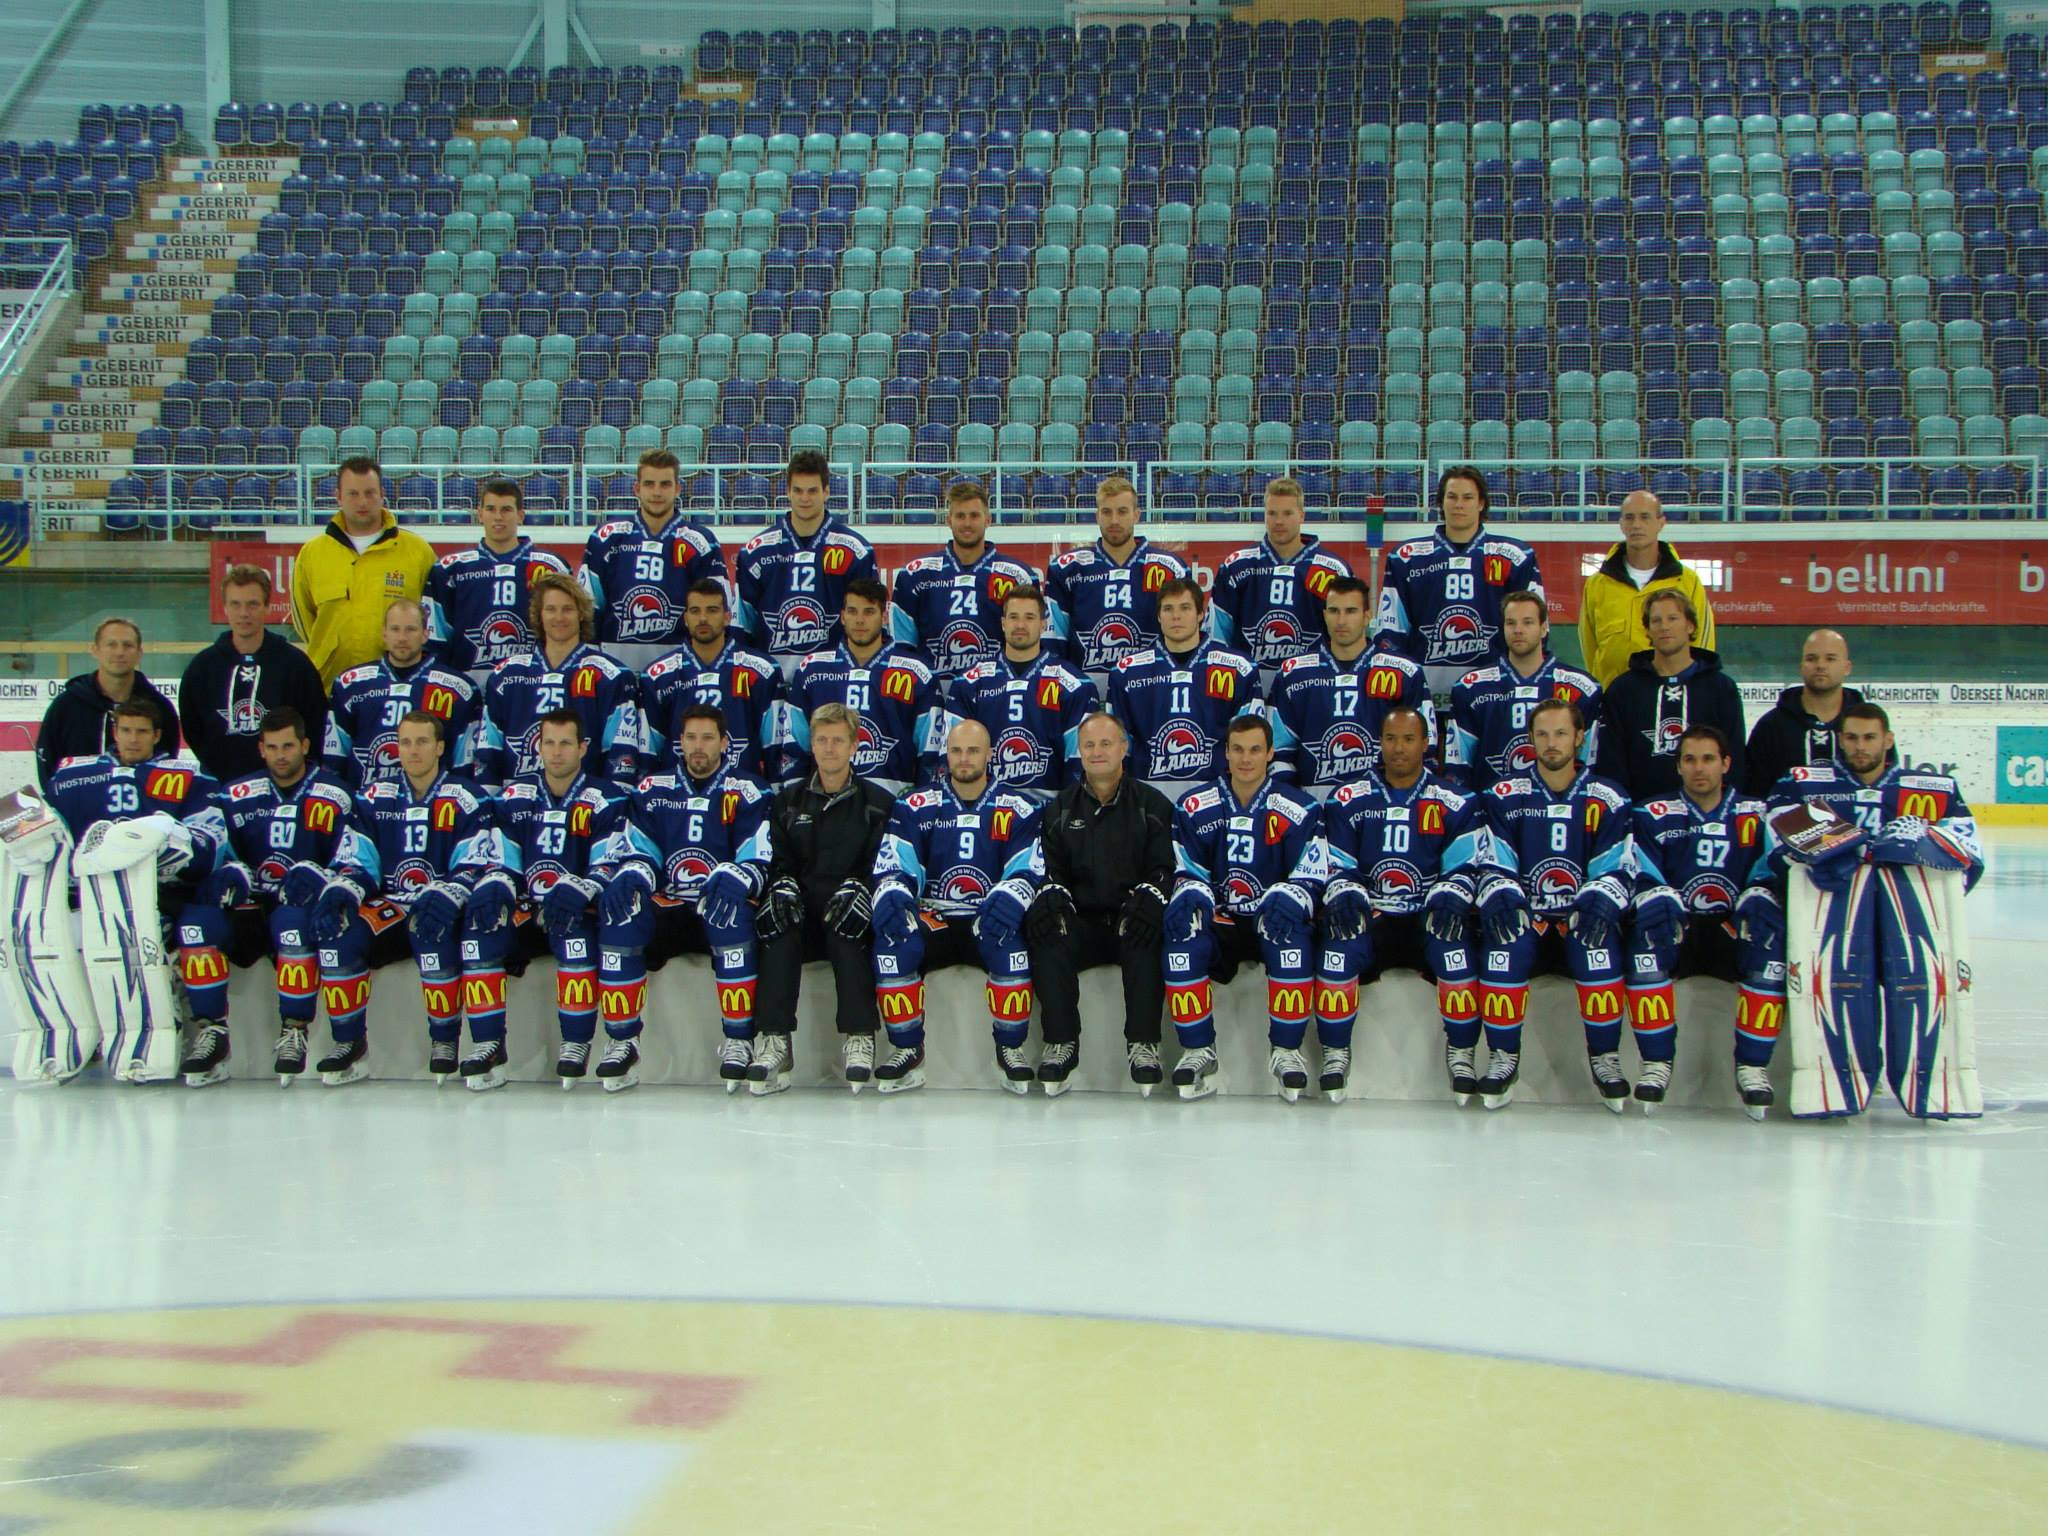 Shootings Stars 2013